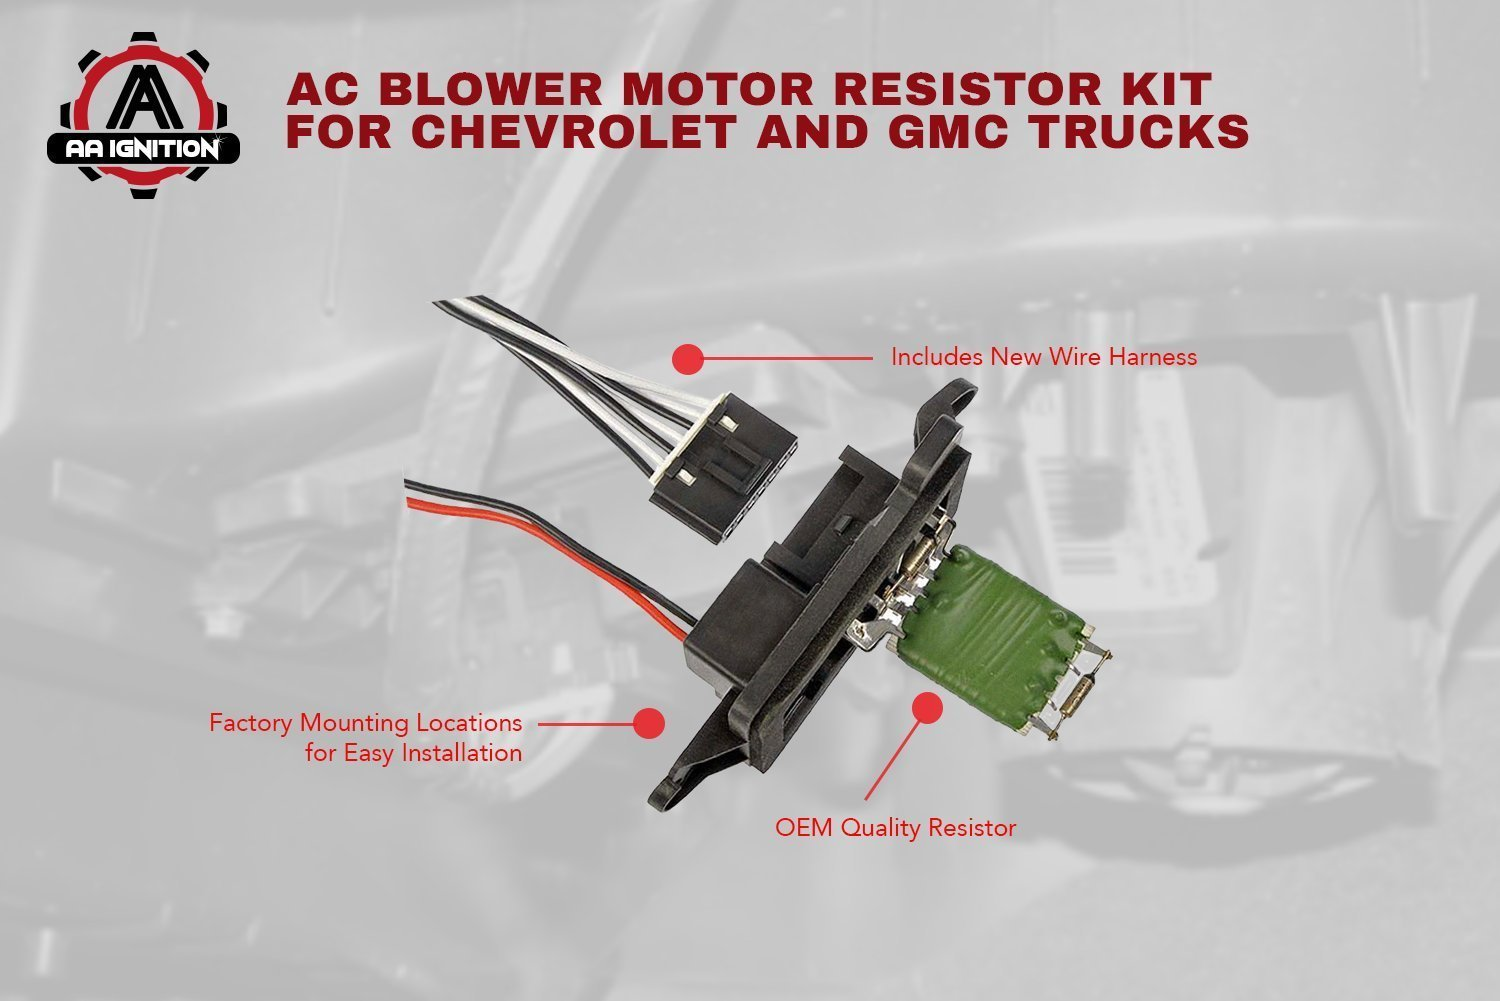 Ac Blower Motor Resistor Kit With Harness Replaces Air Conditioner Wiring Diagram 71 Chevy Truck 89019088 973 405 15 81086 22807123 Fits Silverado Tahoe Suburban Avalanche